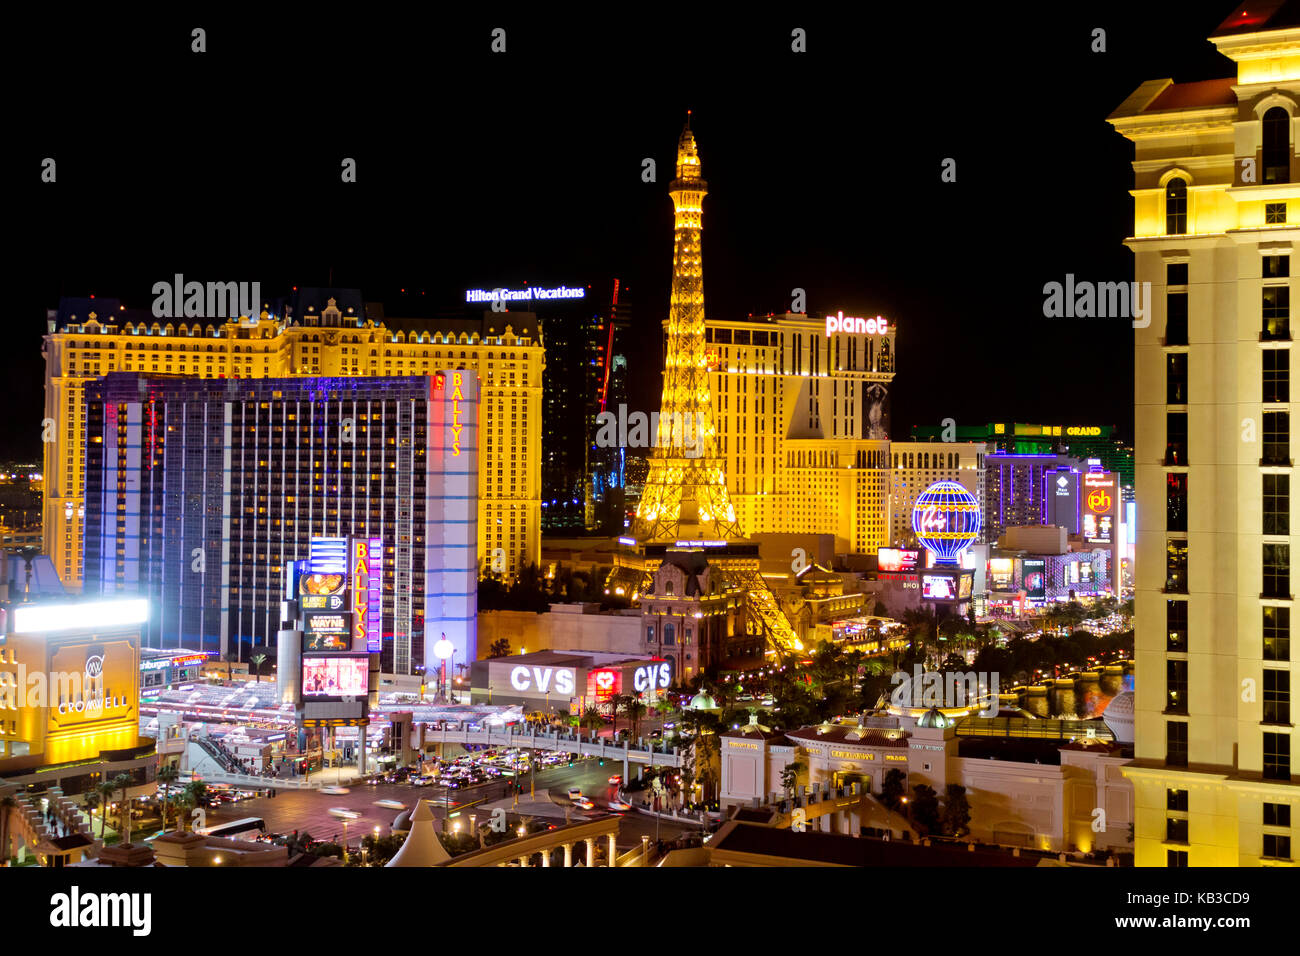 A skyline nighttime view of several casino's and resort on Las Vegas Blvd in Las Vegas, Nevada. - Stock Image